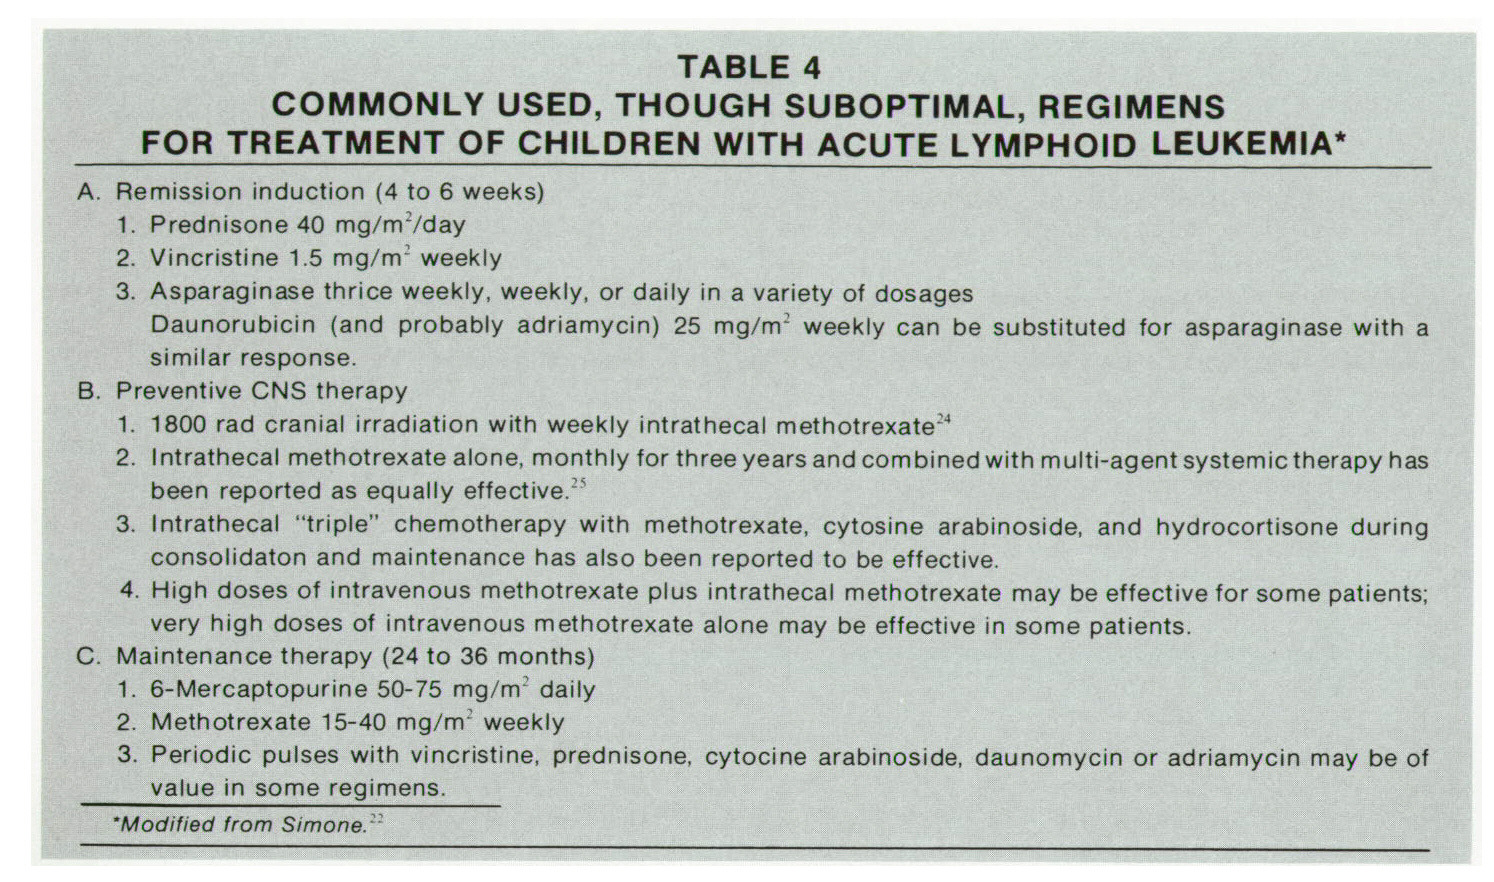 TABLE 4COMMONLY USED, THOUGH SUBOPTIMAL, REGIMENS FOR TREATMENT OF CHILDREN WITH ACUTE LYMPHOIP LEUKEMIA*